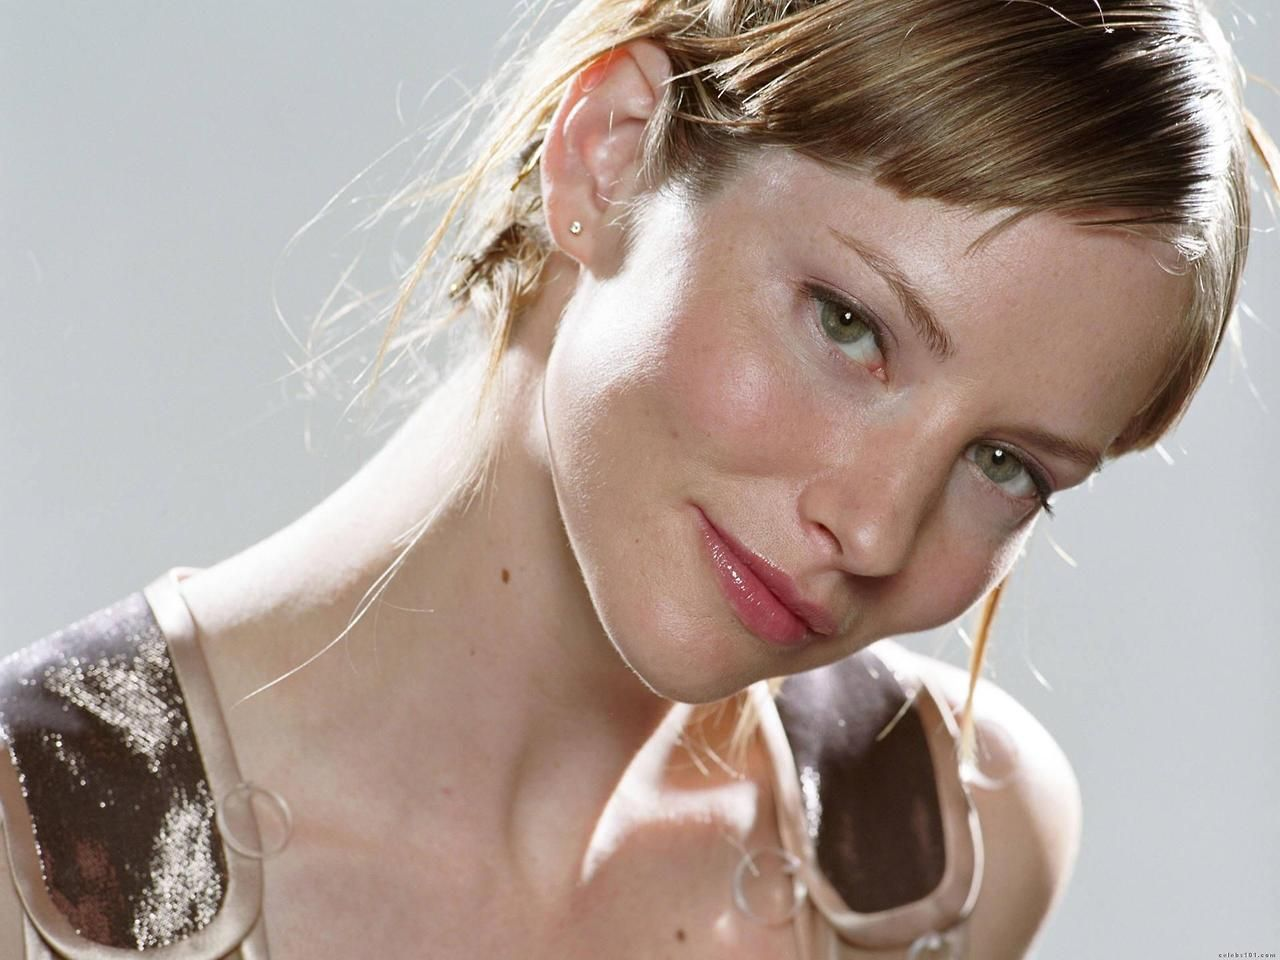 Sienna Guillory (born 1975) Sienna Guillory (born 1975) new pictures